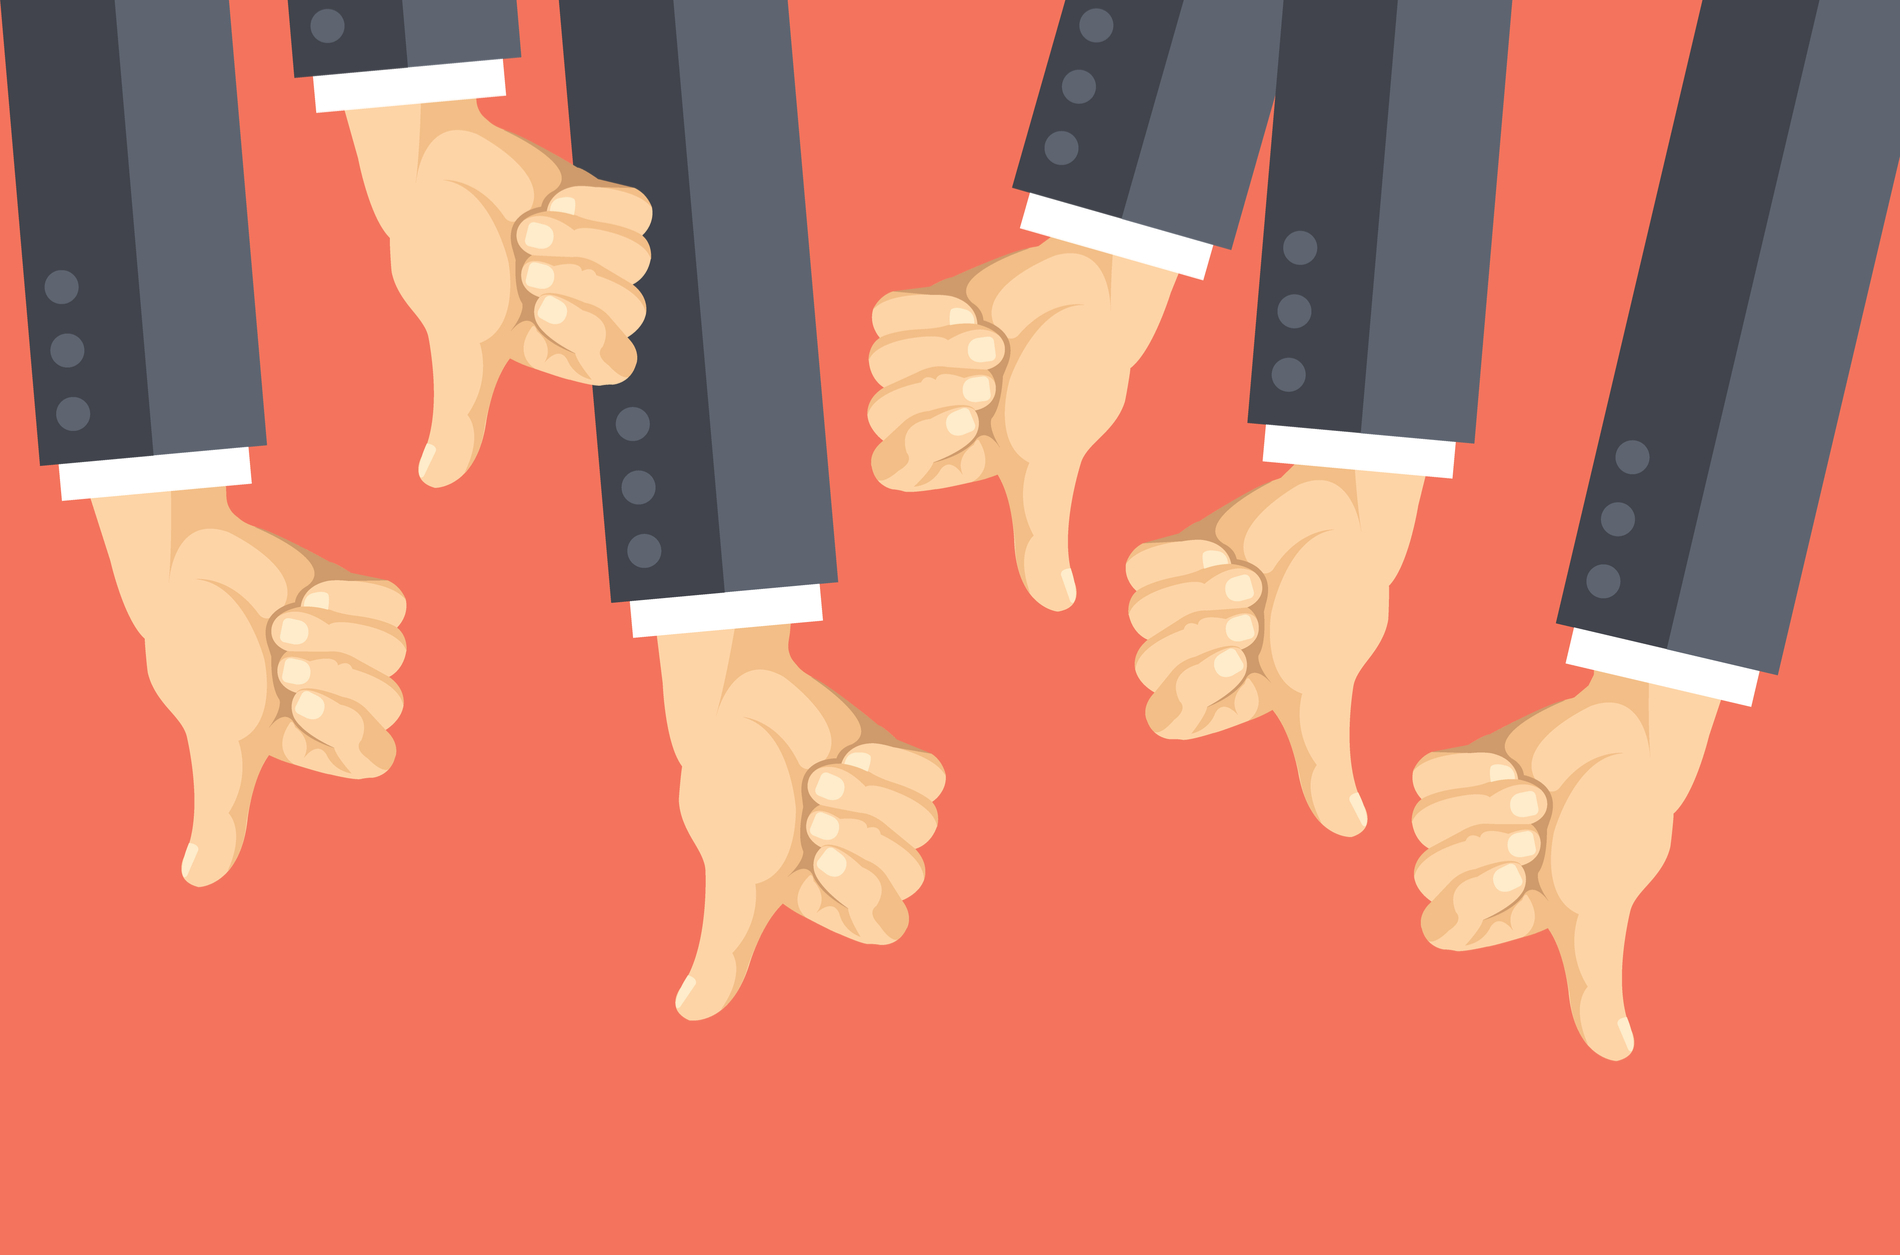 Dealing with a Negative Online Review in 3 Simple Steps